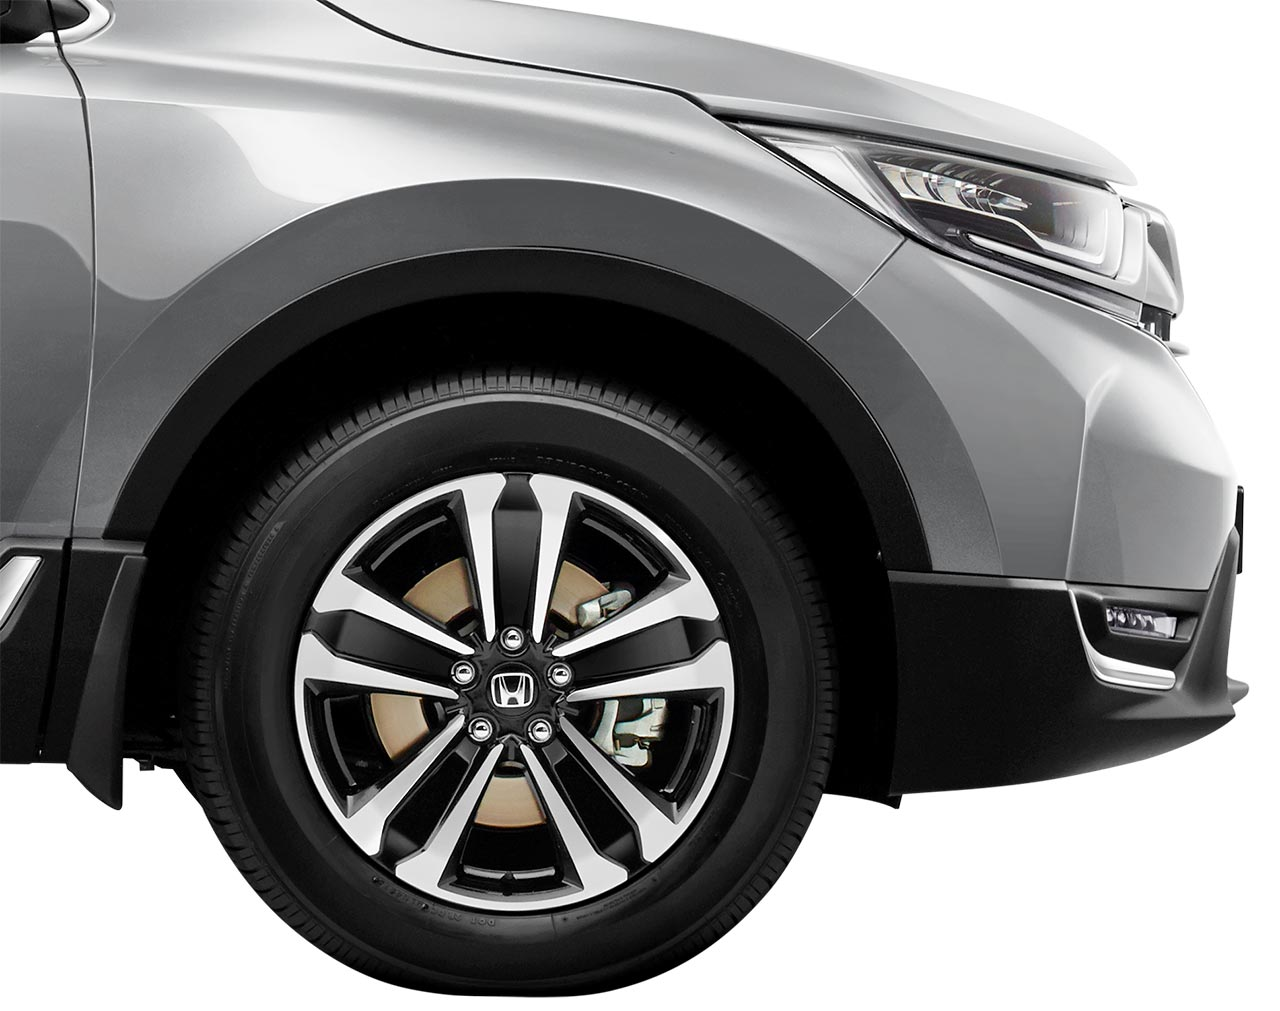 "18"" Alloy Wheel Design (tipe Prestige)"